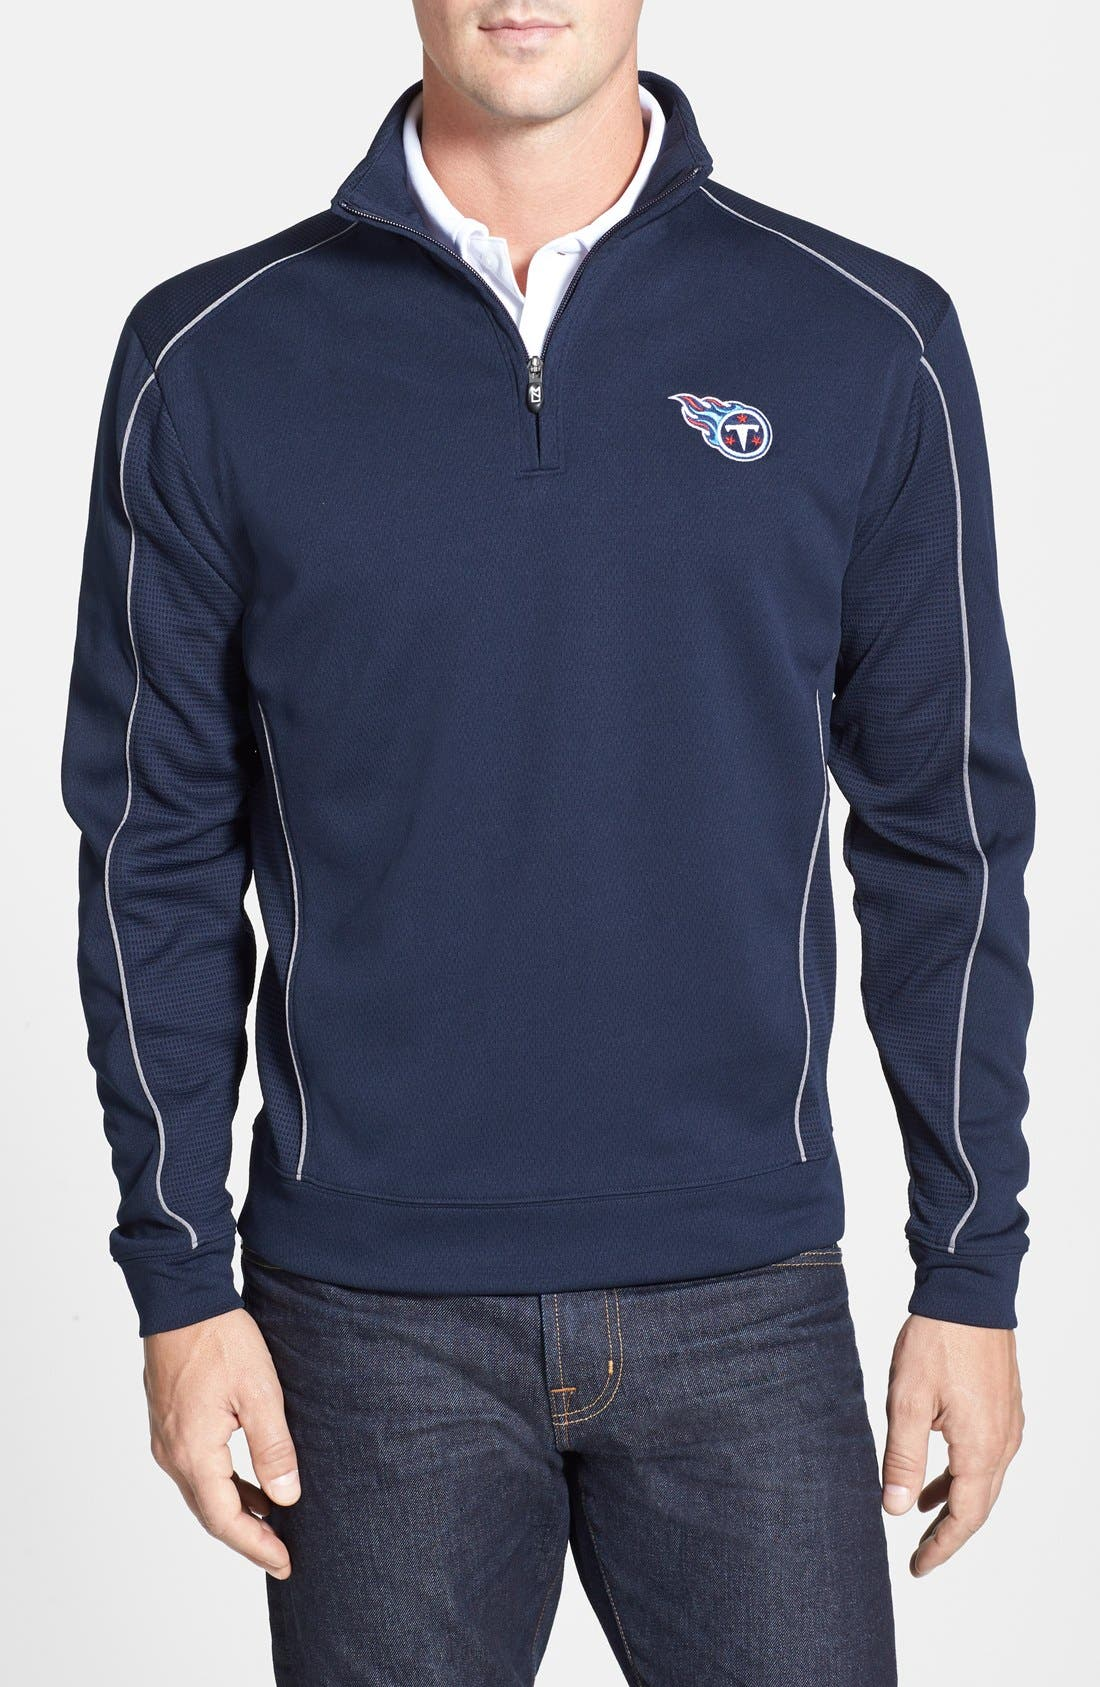 Tennessee Titans - Edge DryTec Moisture Wicking Half Zip Pullover,                         Main,                         color, 420